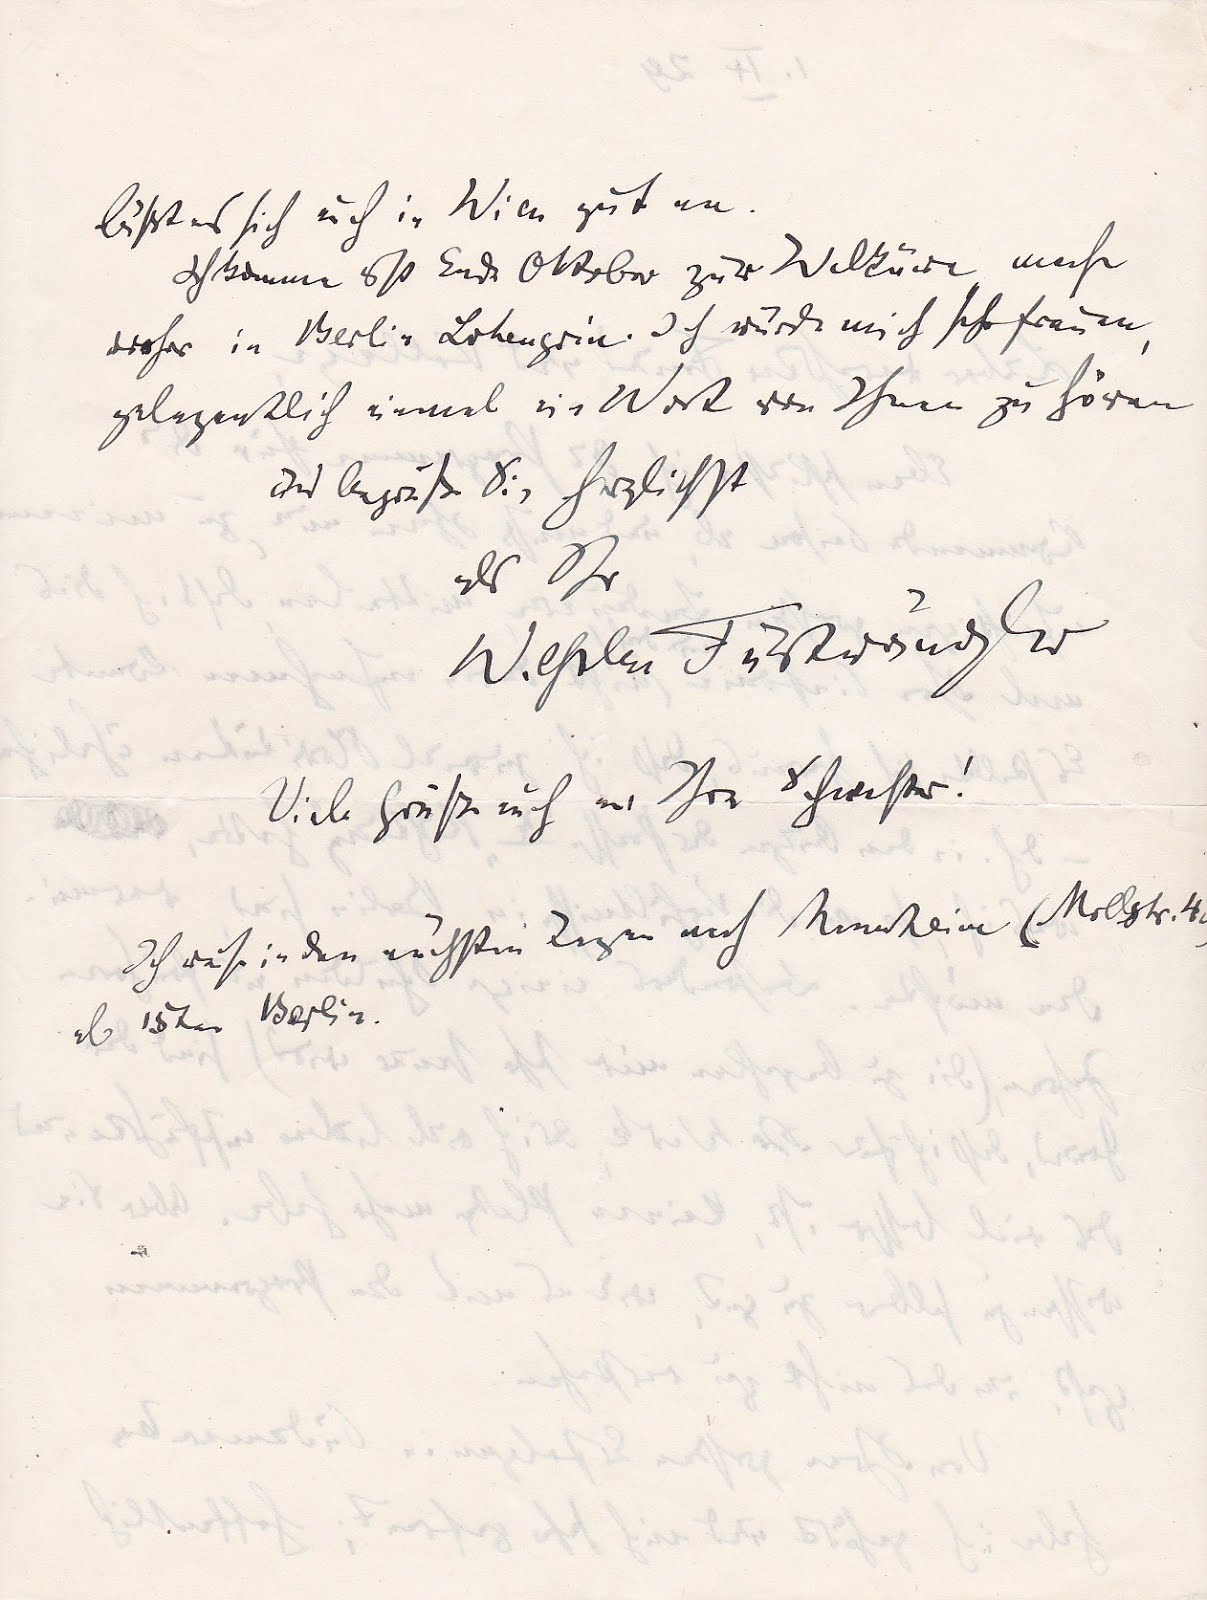 Conductor Wilhelm Furtwaengler pens a 2 page letter to his colleague Robert Heger